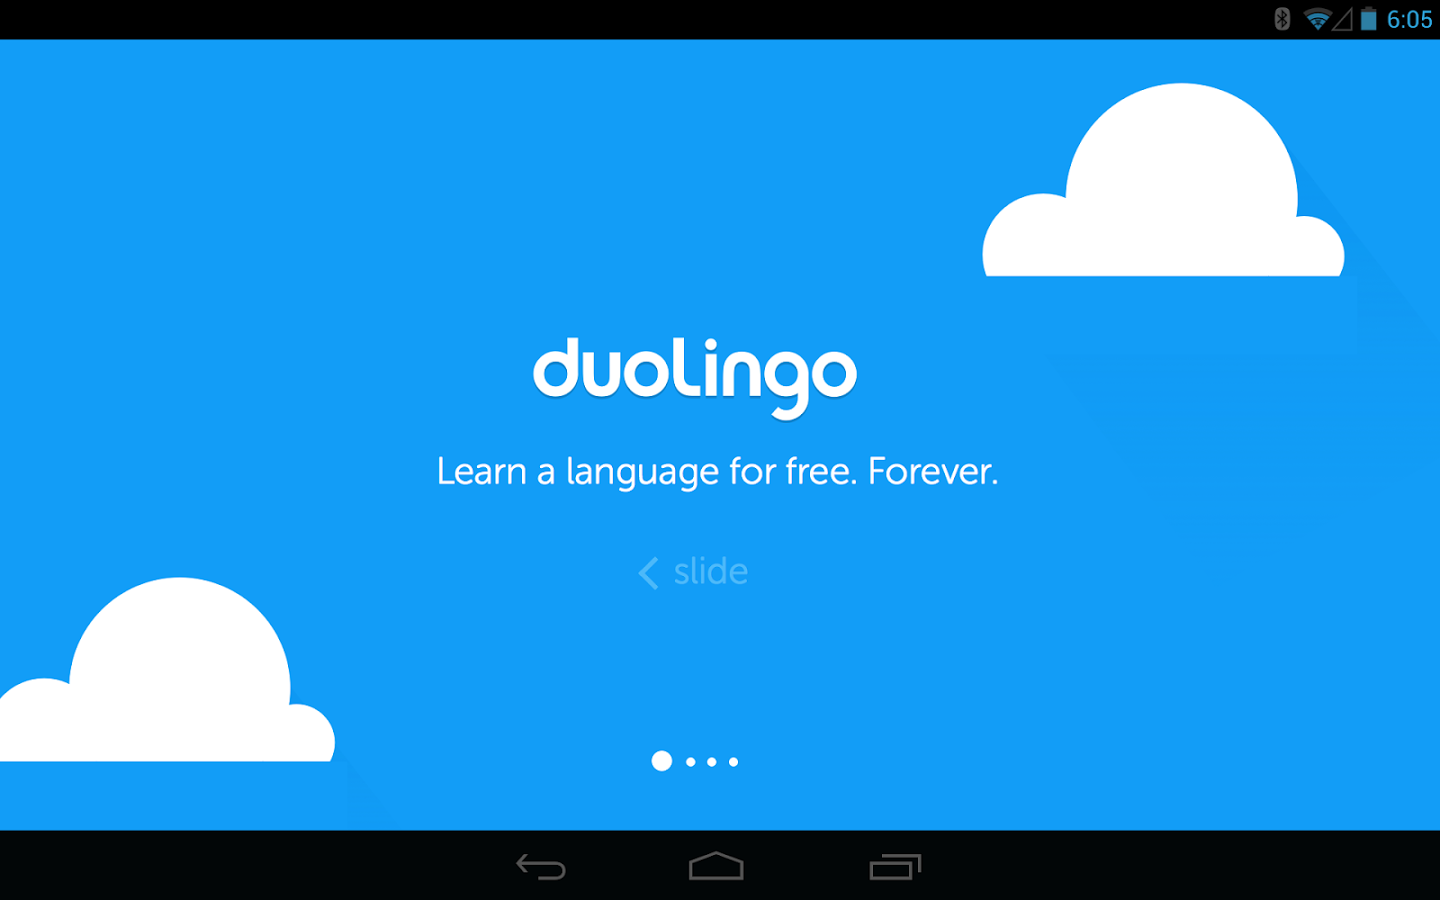 The best Android apps for learning foreign languages